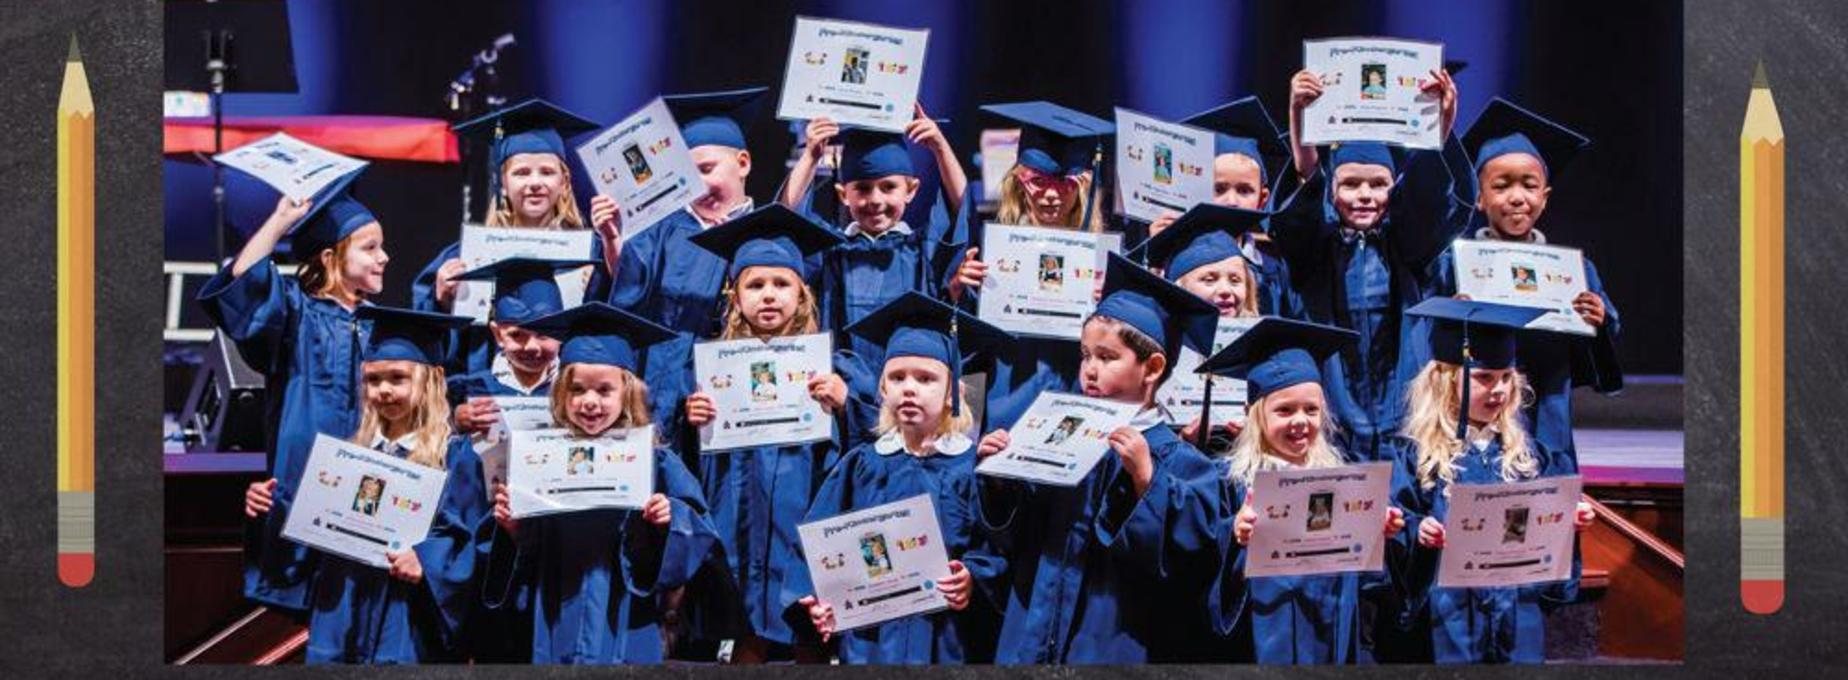 Morning VPK 2017-2018 Graduates